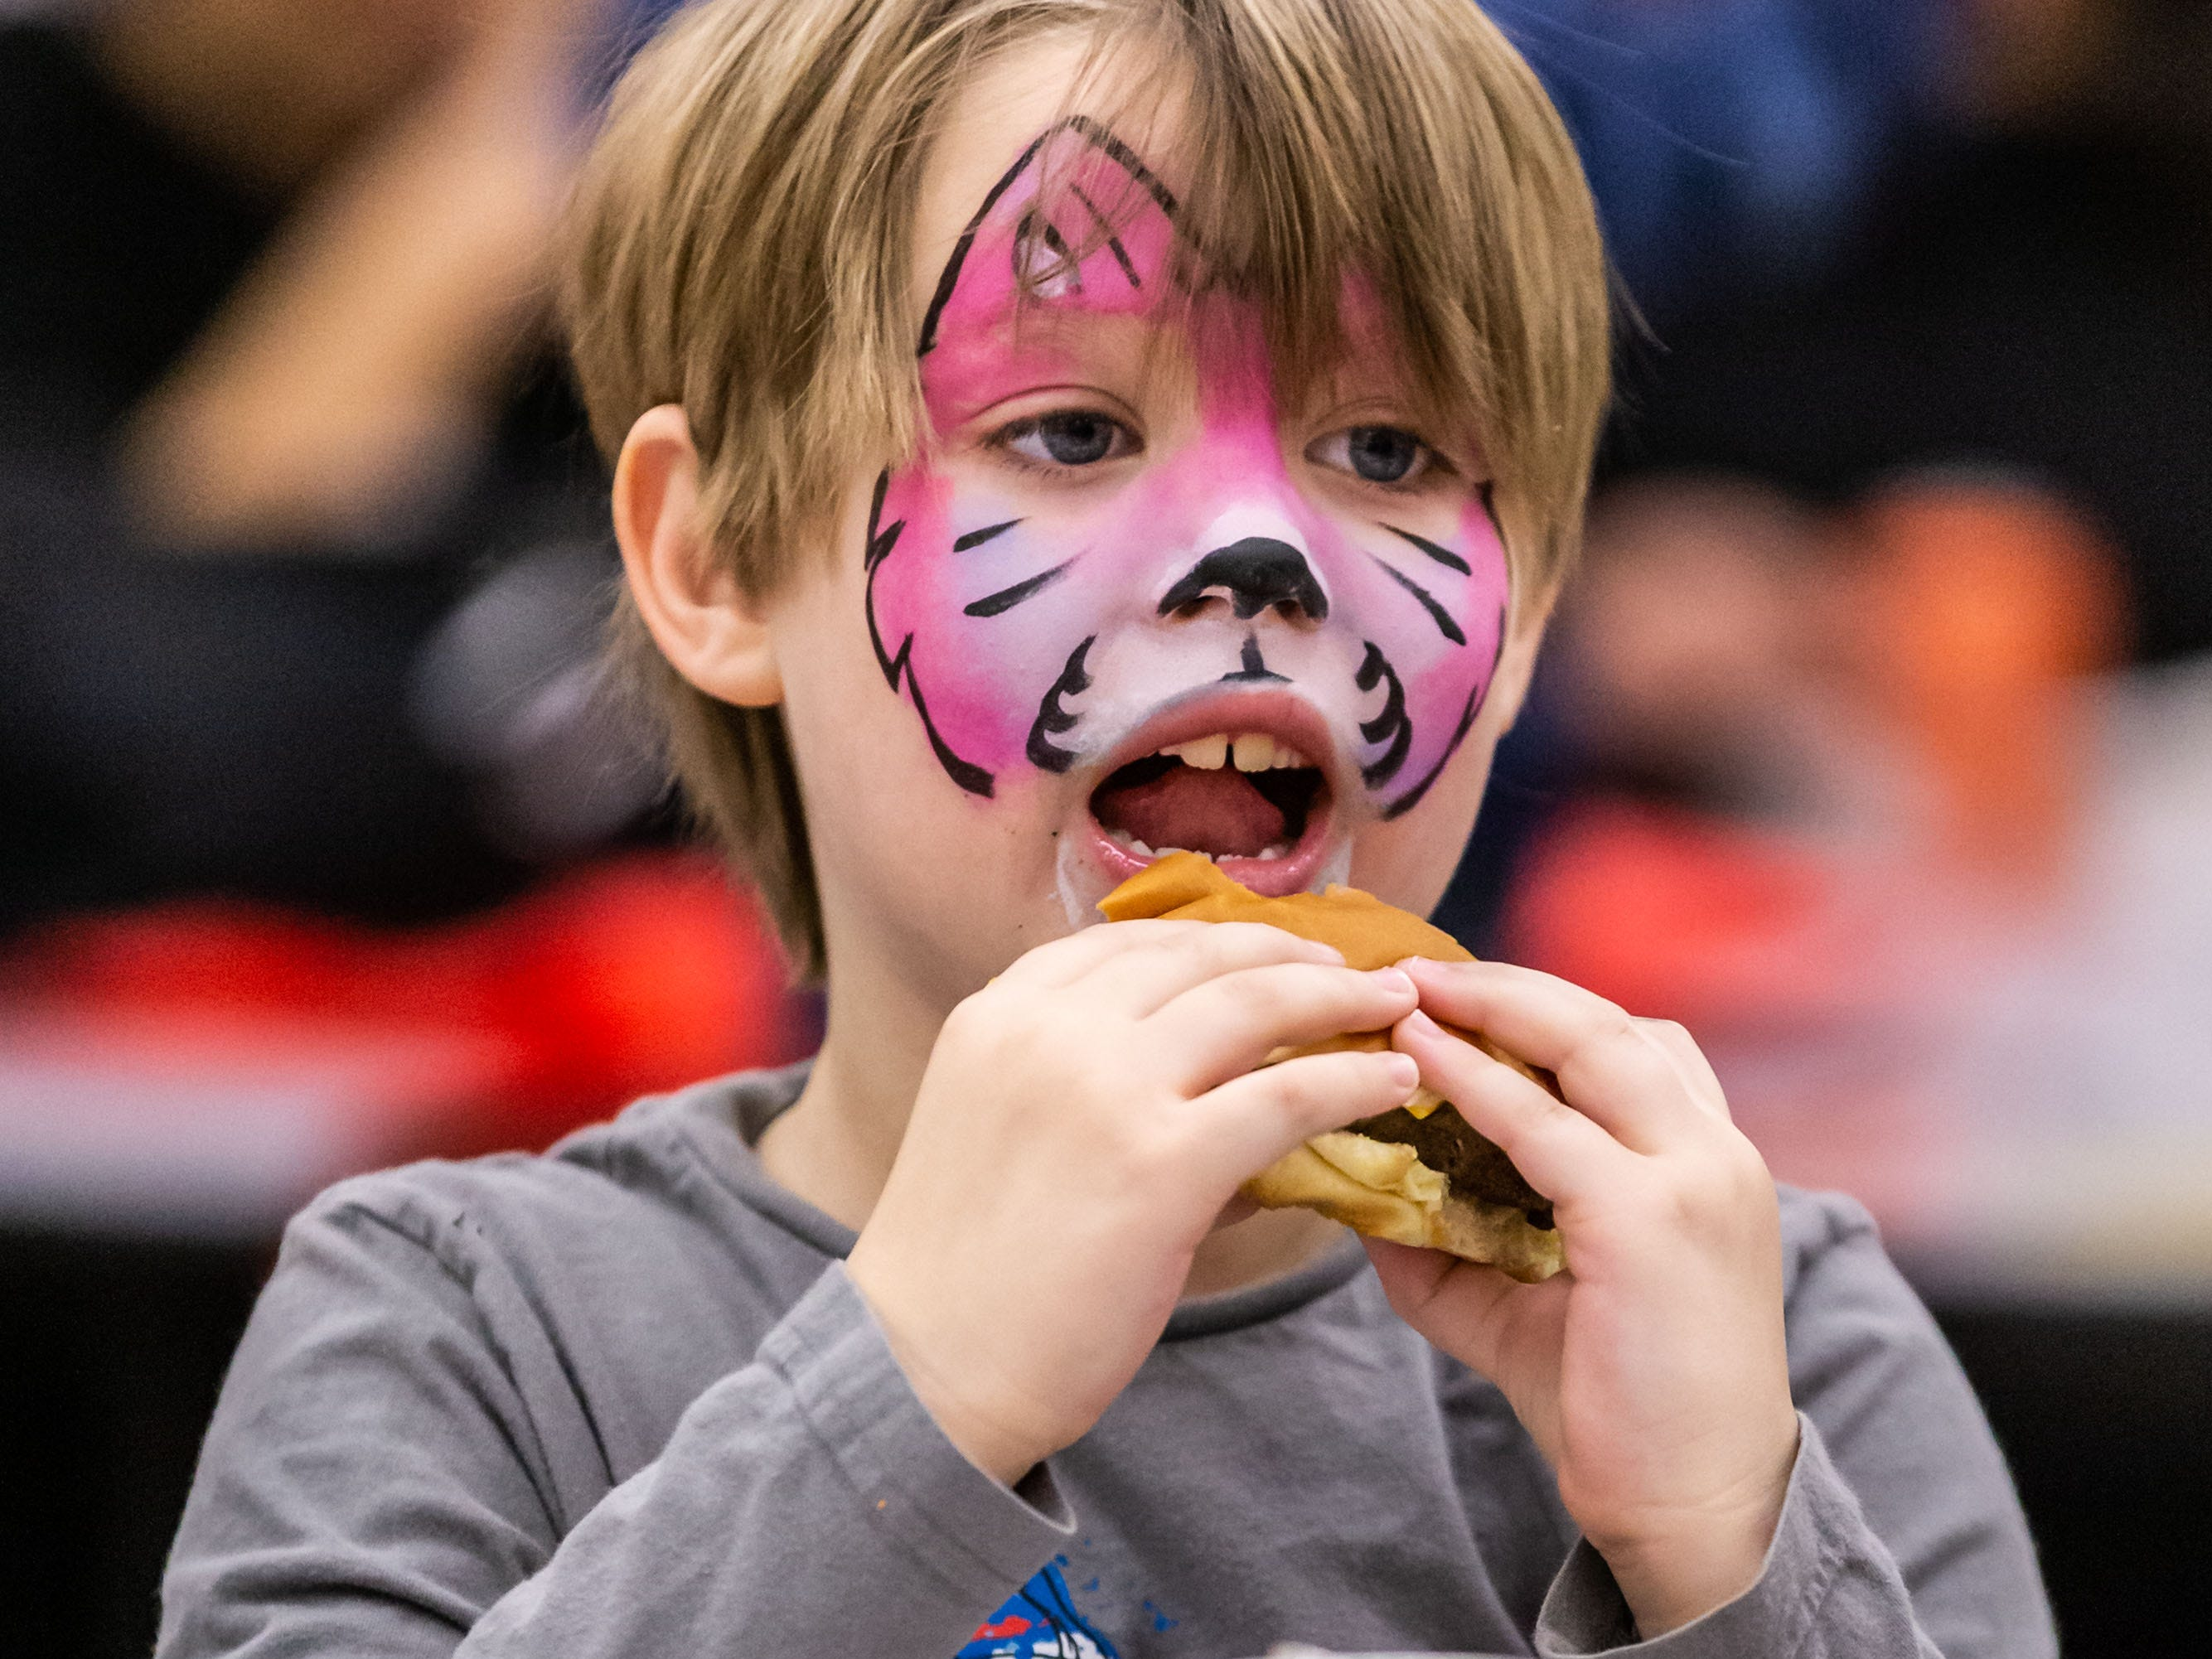 Luke Krieser, 8, of Oconomowoc, enjoys a hamburger during the 9th annual St. Joan of Arc Carnival in Nashotah on Friday, Feb. 1, 2019. The family-friendly event features carnival games, food, face painting, balloon animals, a fortune teller and more.